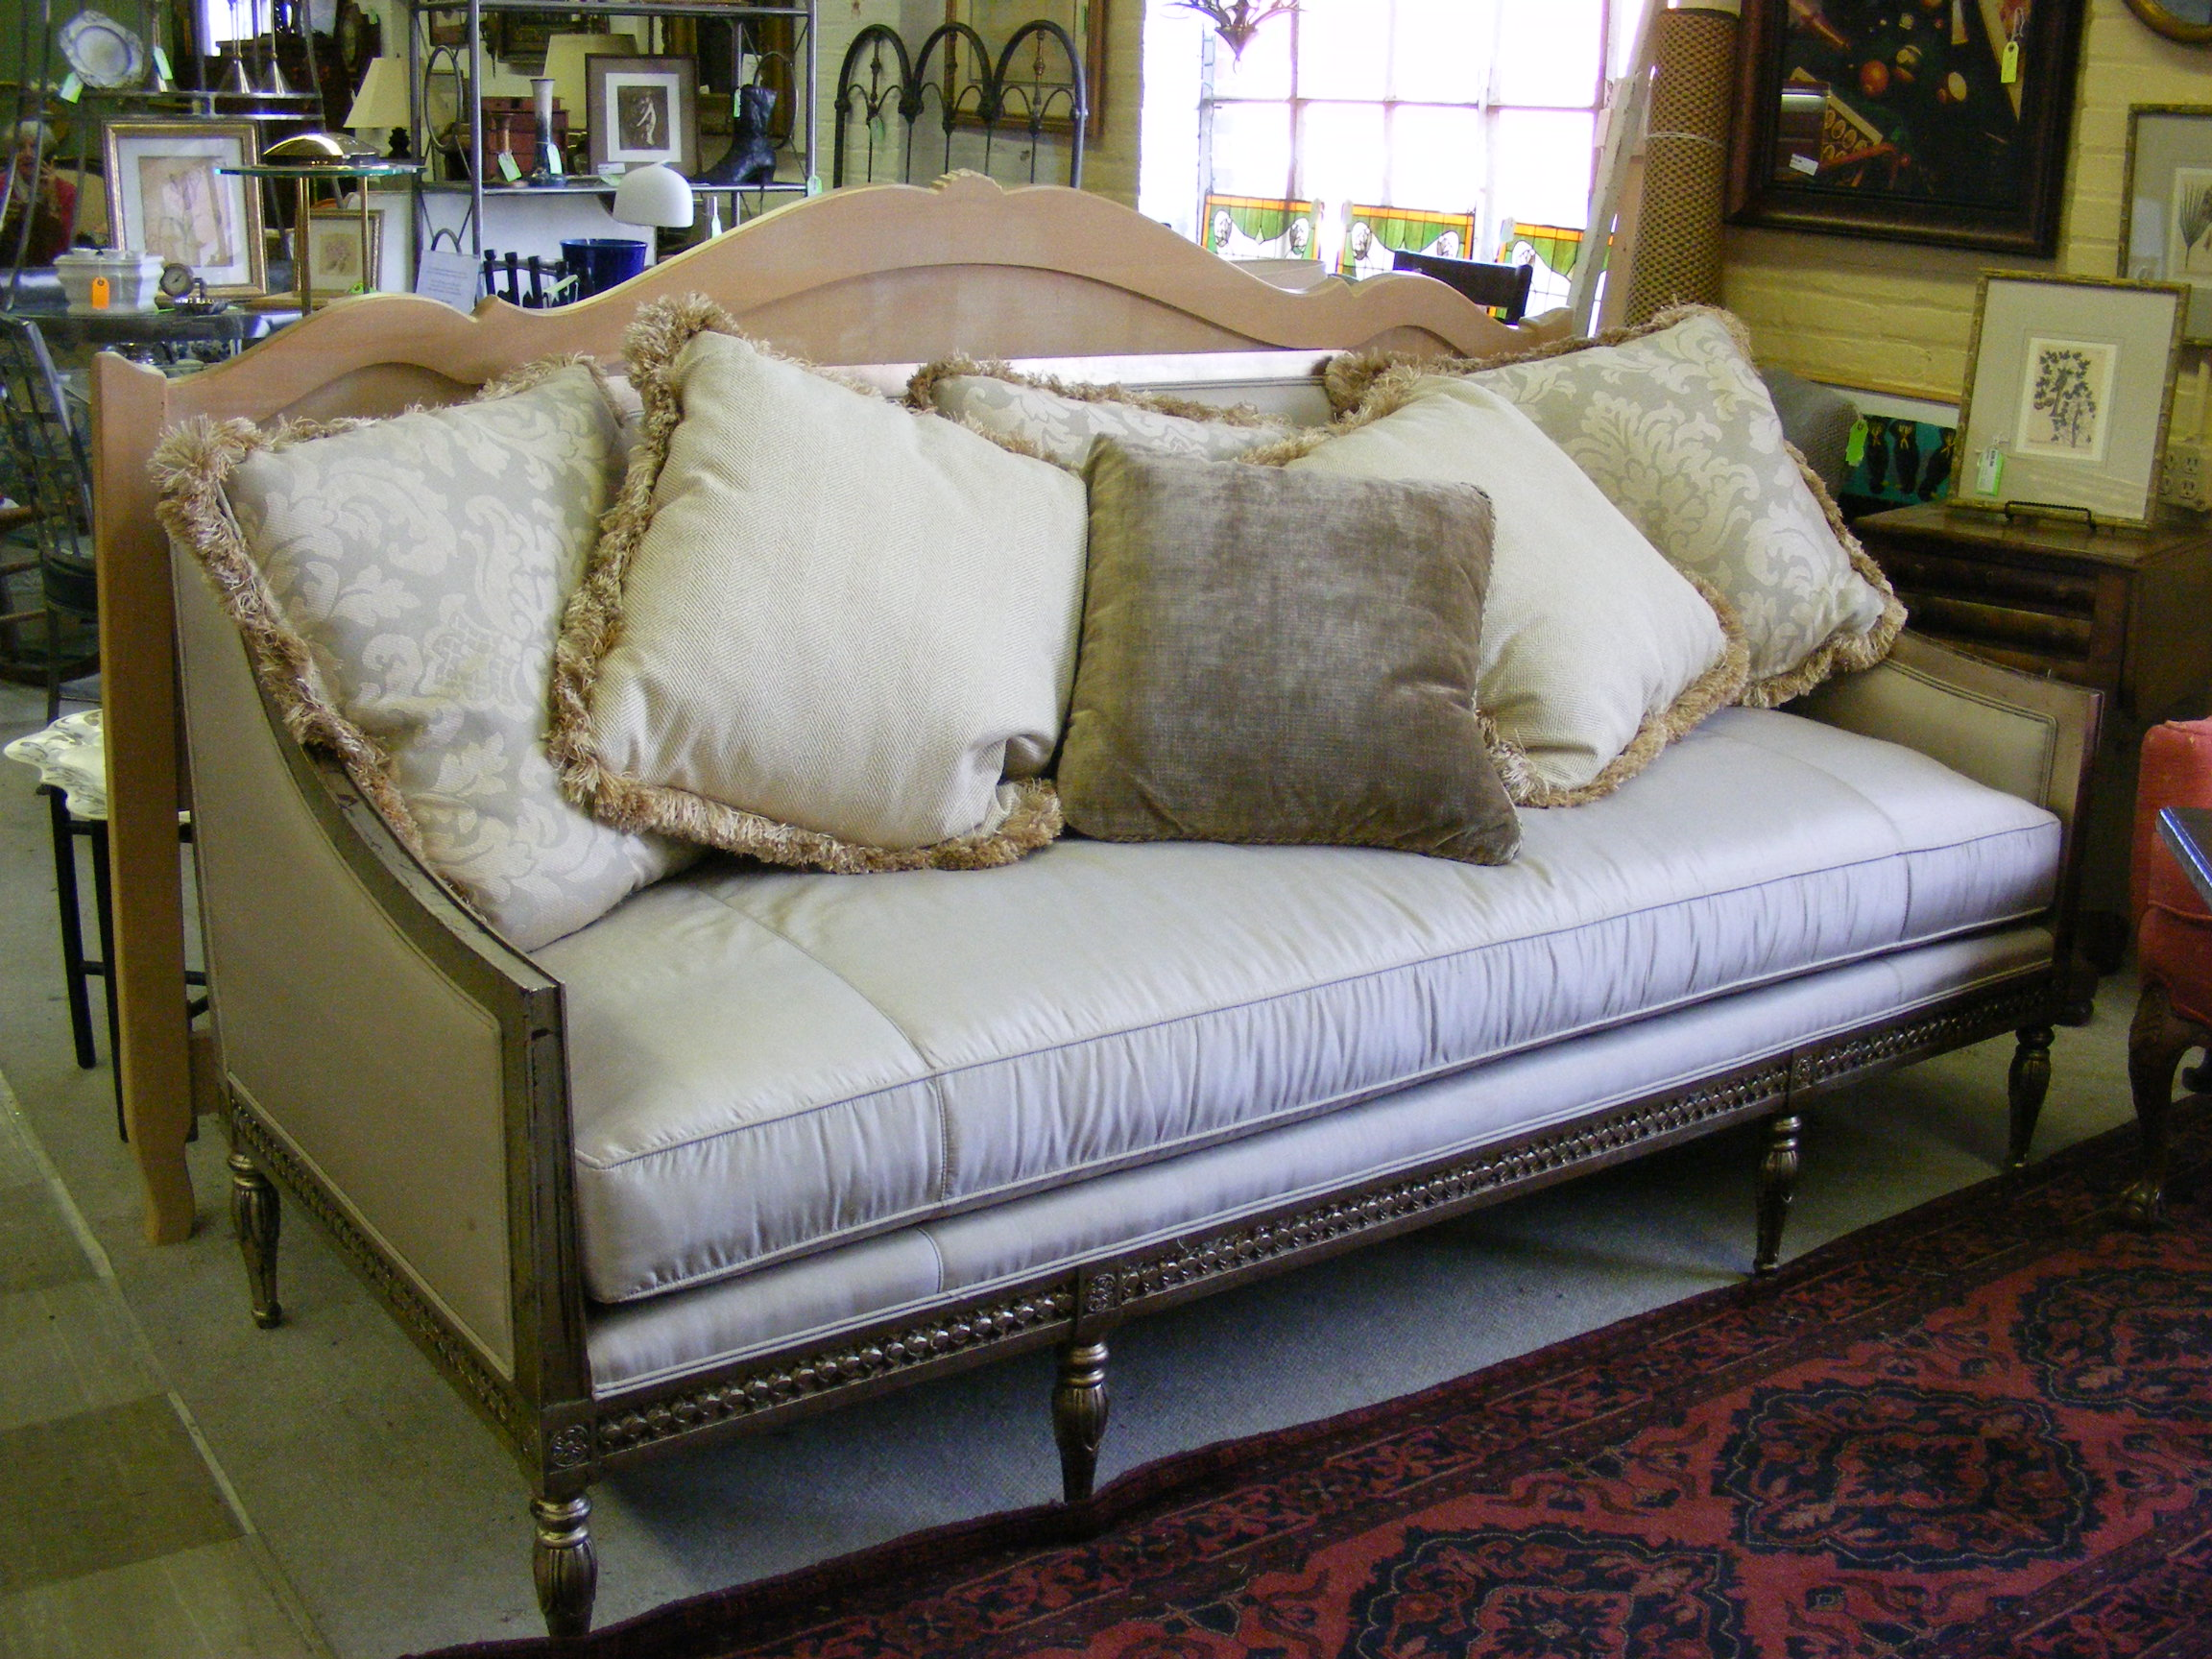 Home Furnishings on Consignment